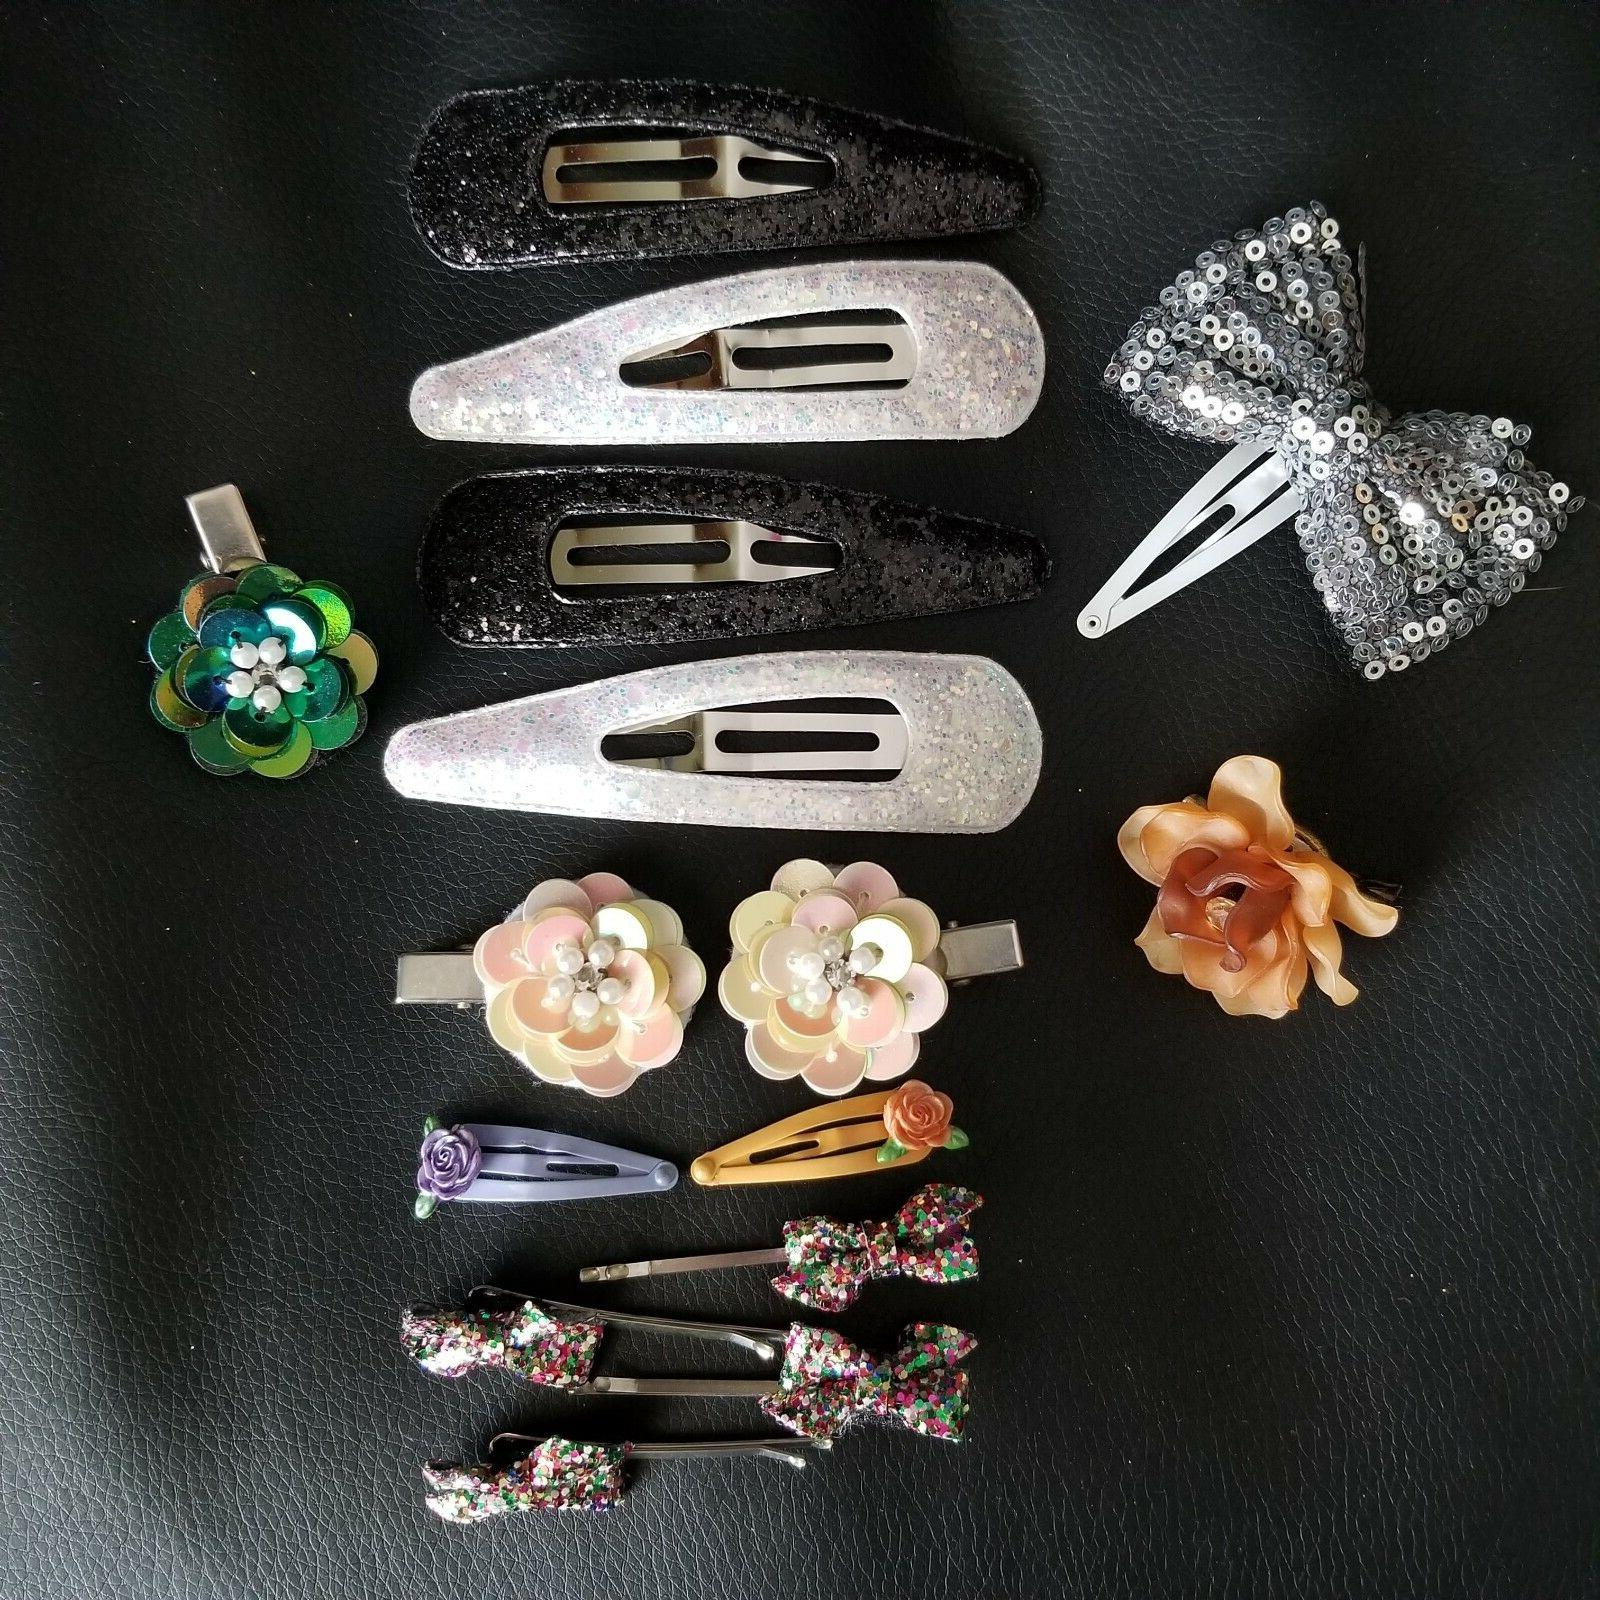 hair care accessories lot hair clips ties